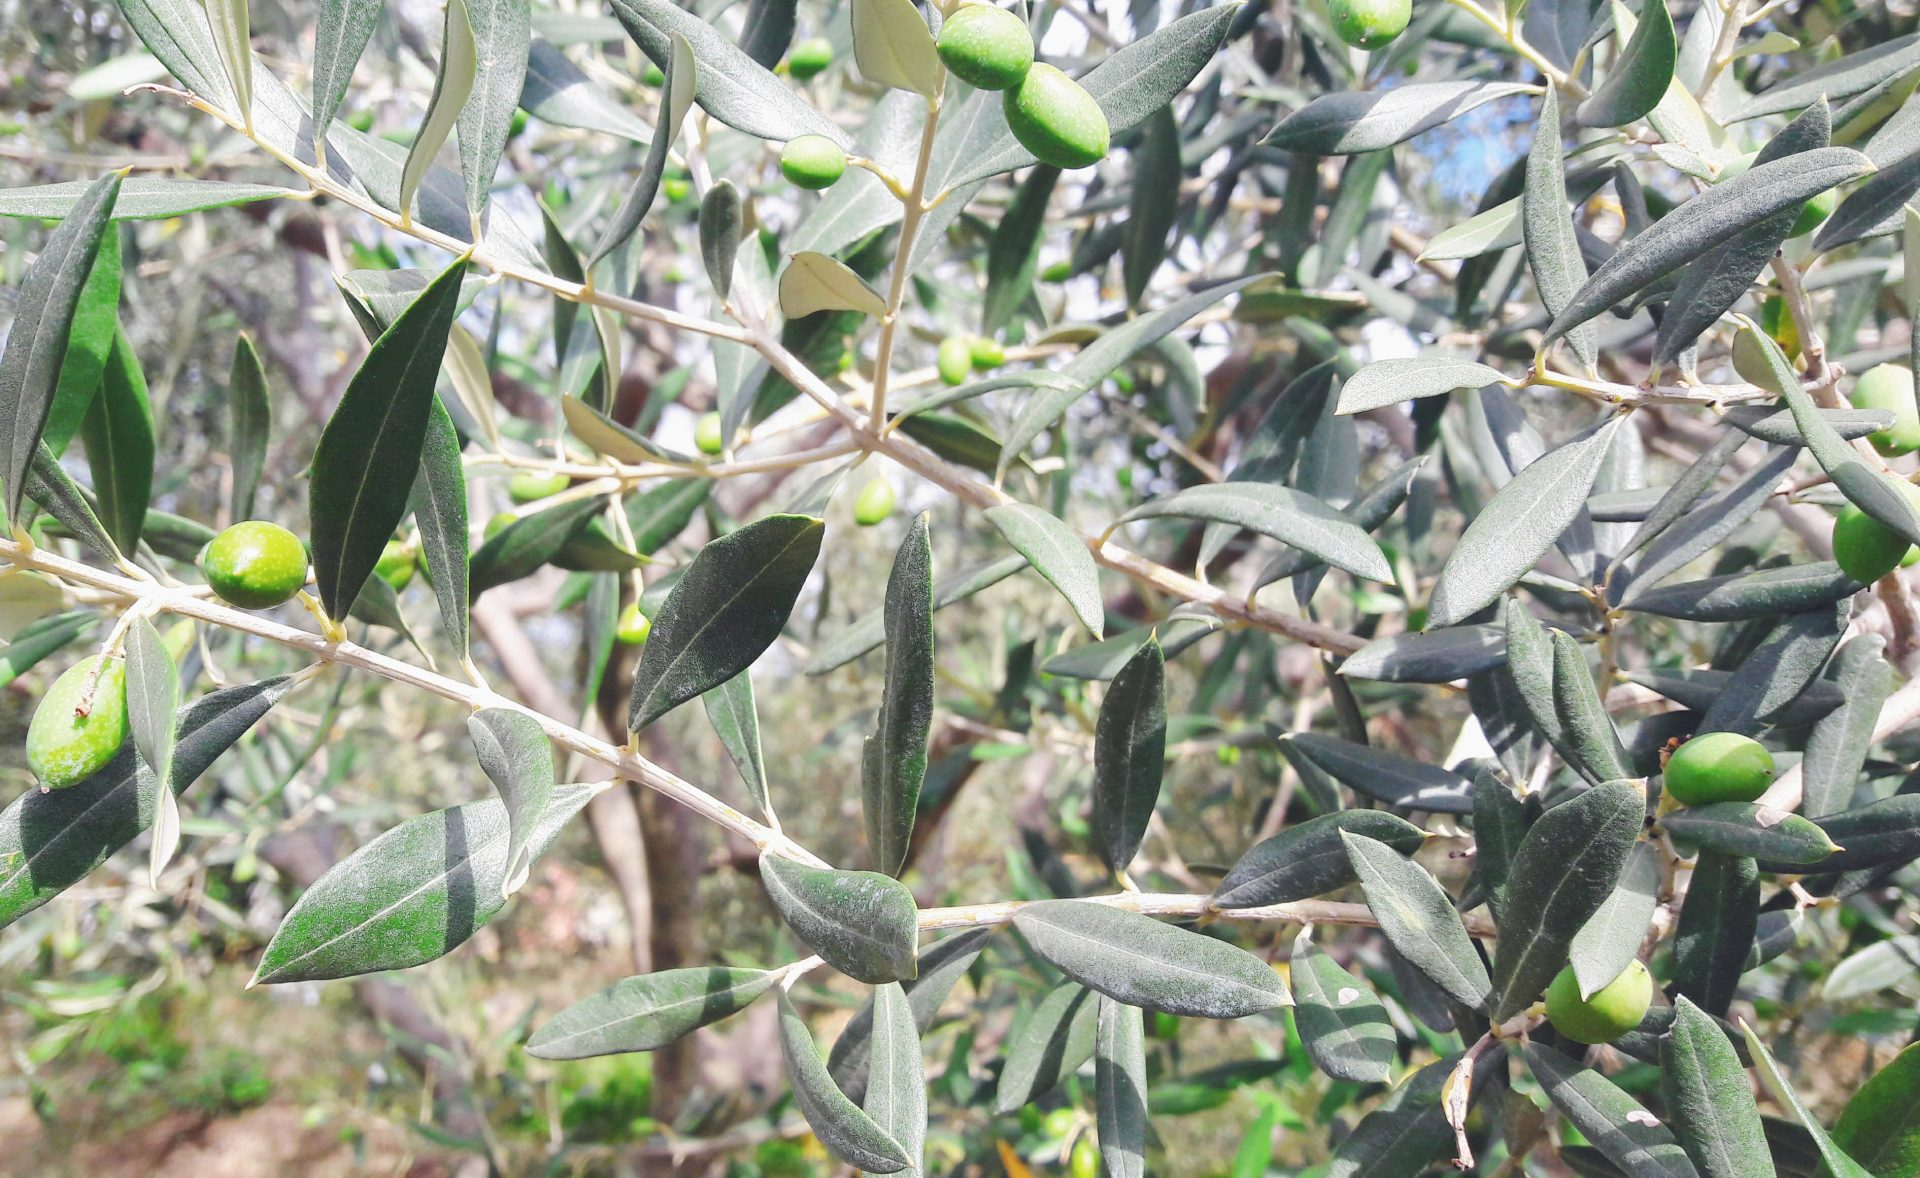 Is Olive Oil Good For Your Skin And Hair? Click To Find Out...